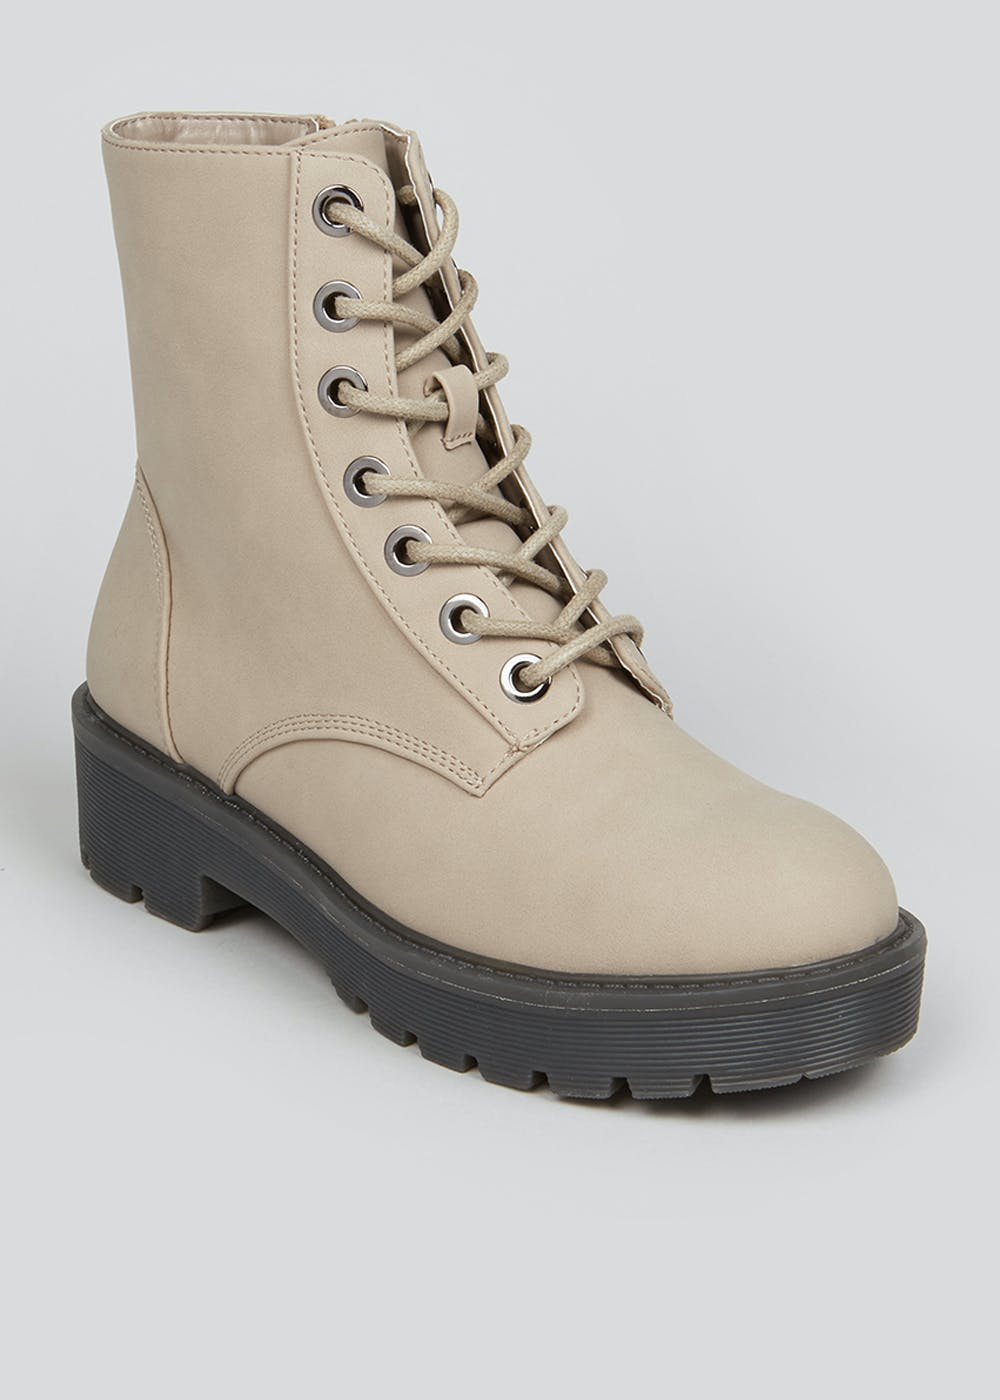 Cream Chunky Gum Sole Lace Up Boots